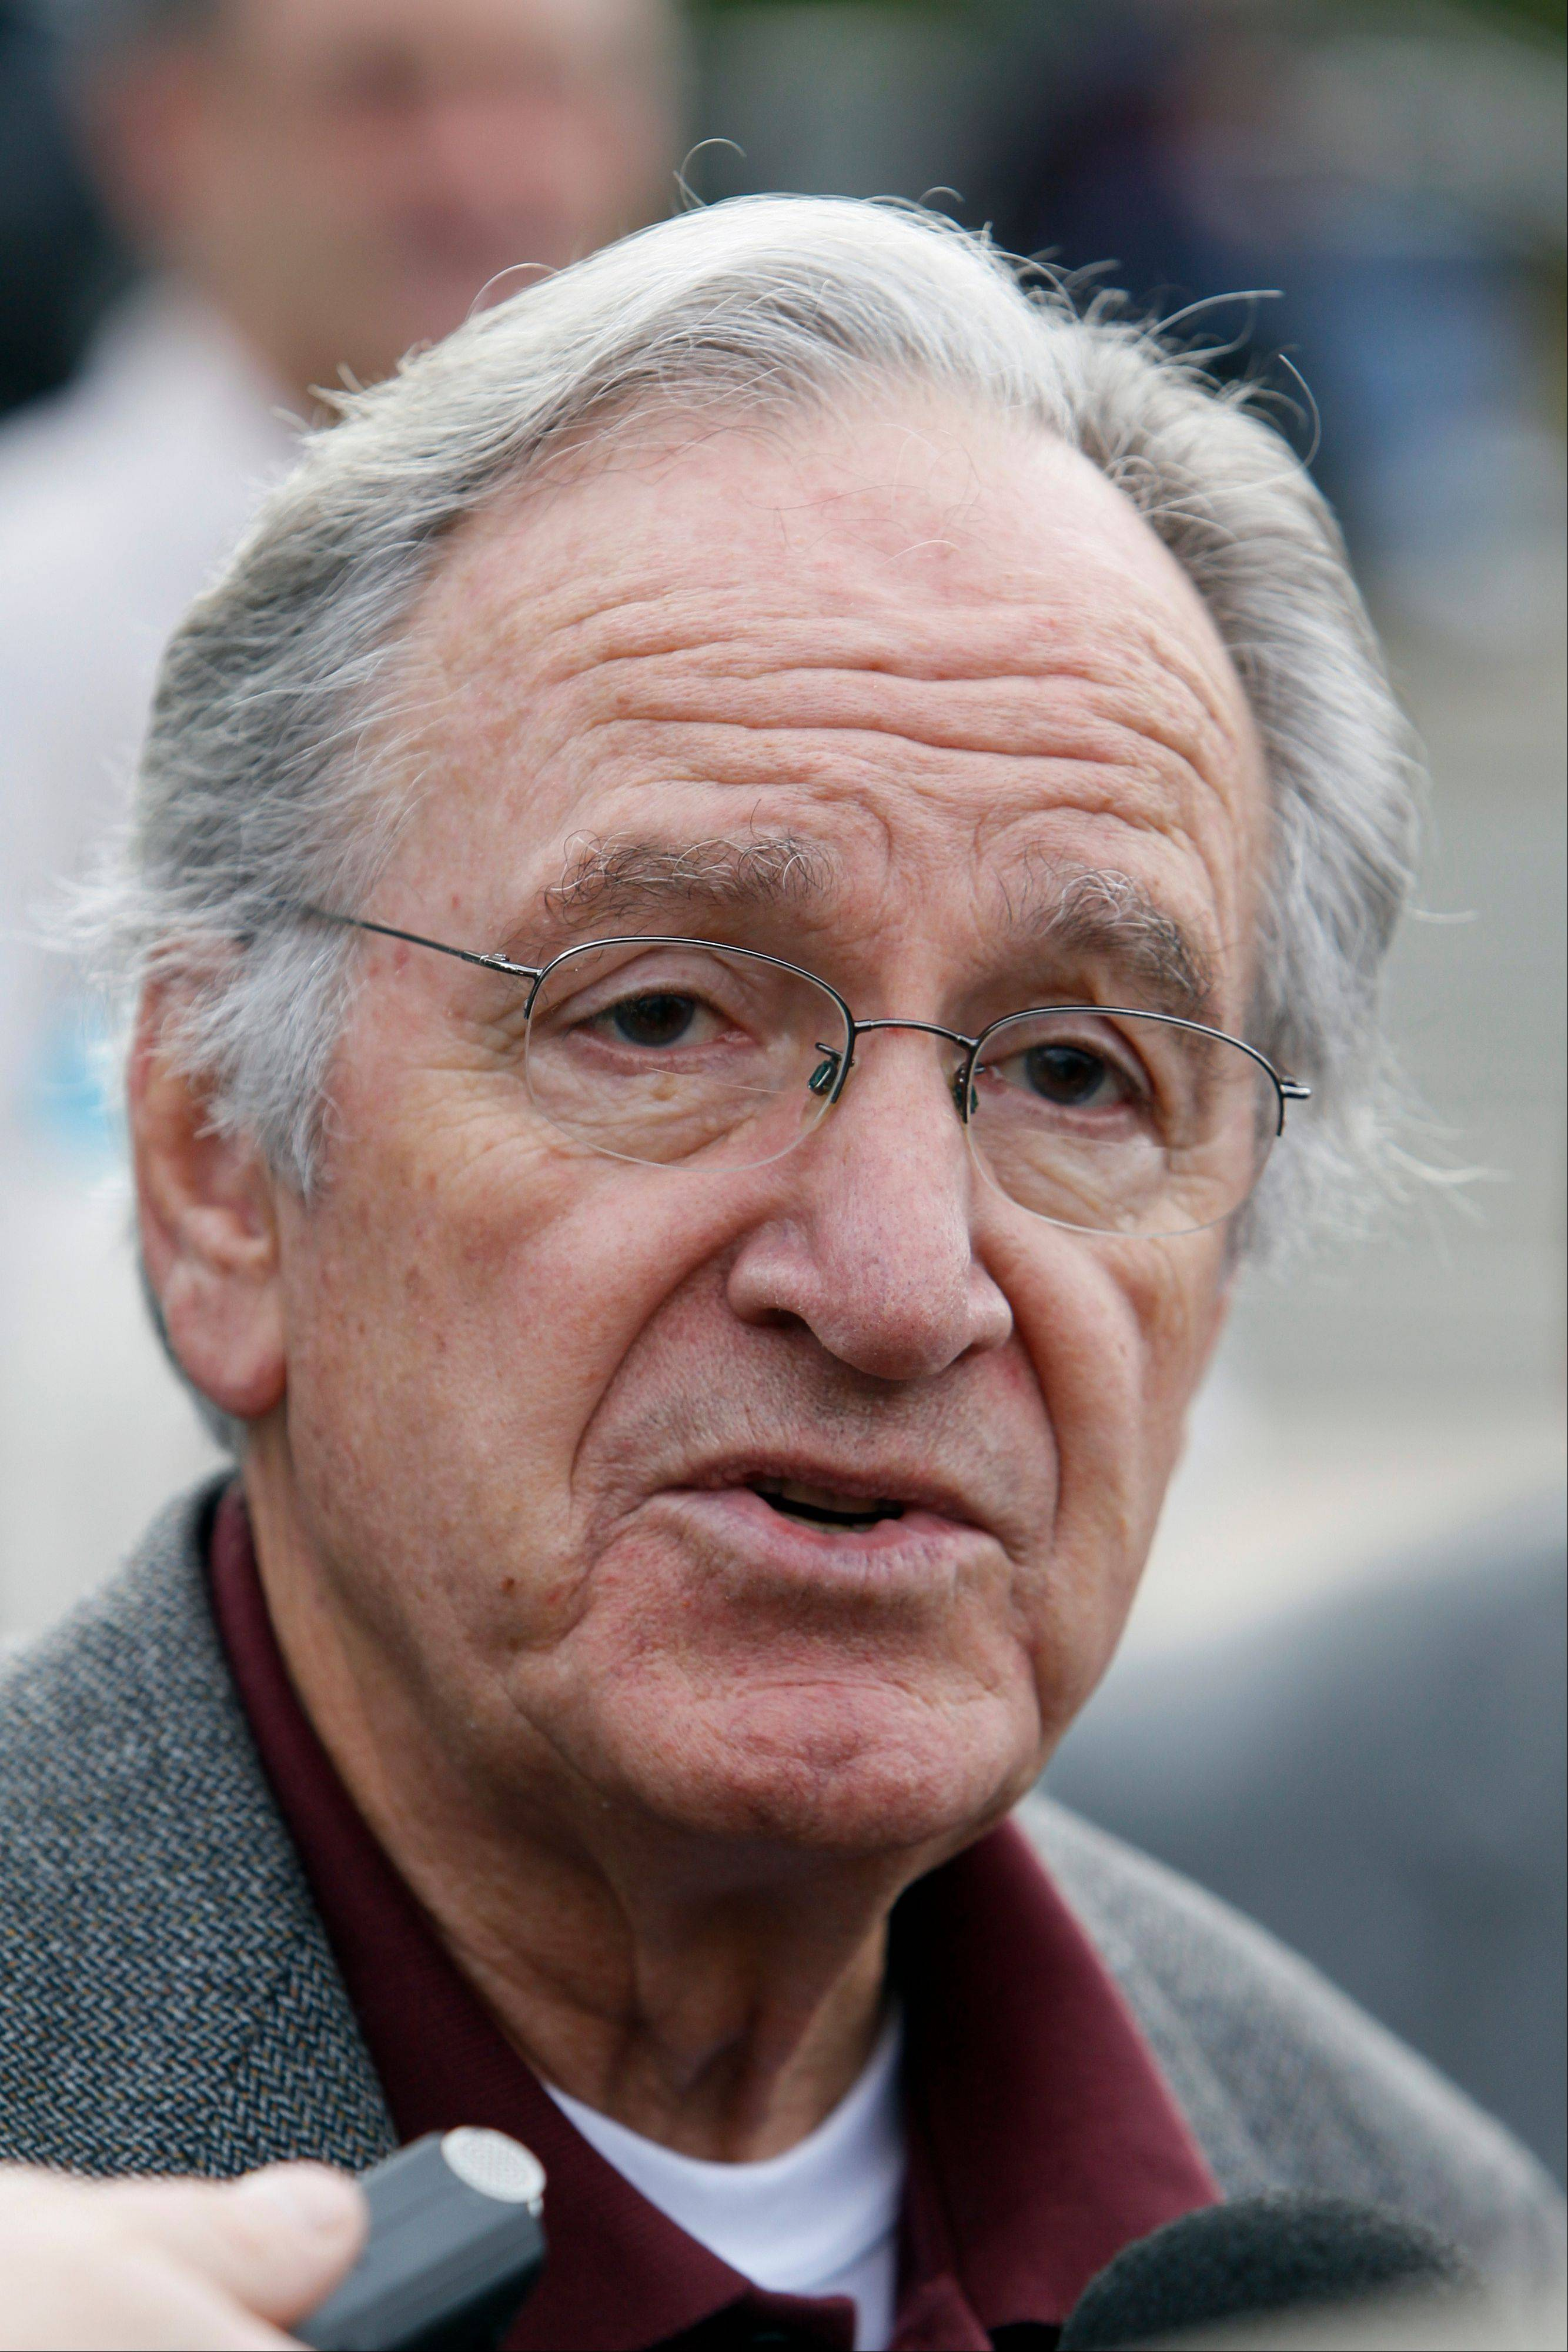 In this Monday, Oct. 25, 2010 photo, U.S. Sen. Tom Harkin, D-Iowa, speaks to reporters following a rally in support of three Iowa Supreme Court justices who are up for retention votes in the November election, in Des Moines, Iowa. Harkin says he will not seek re-election in 2014, The Associated Press reports Saturday, Jan. 26, 2013.